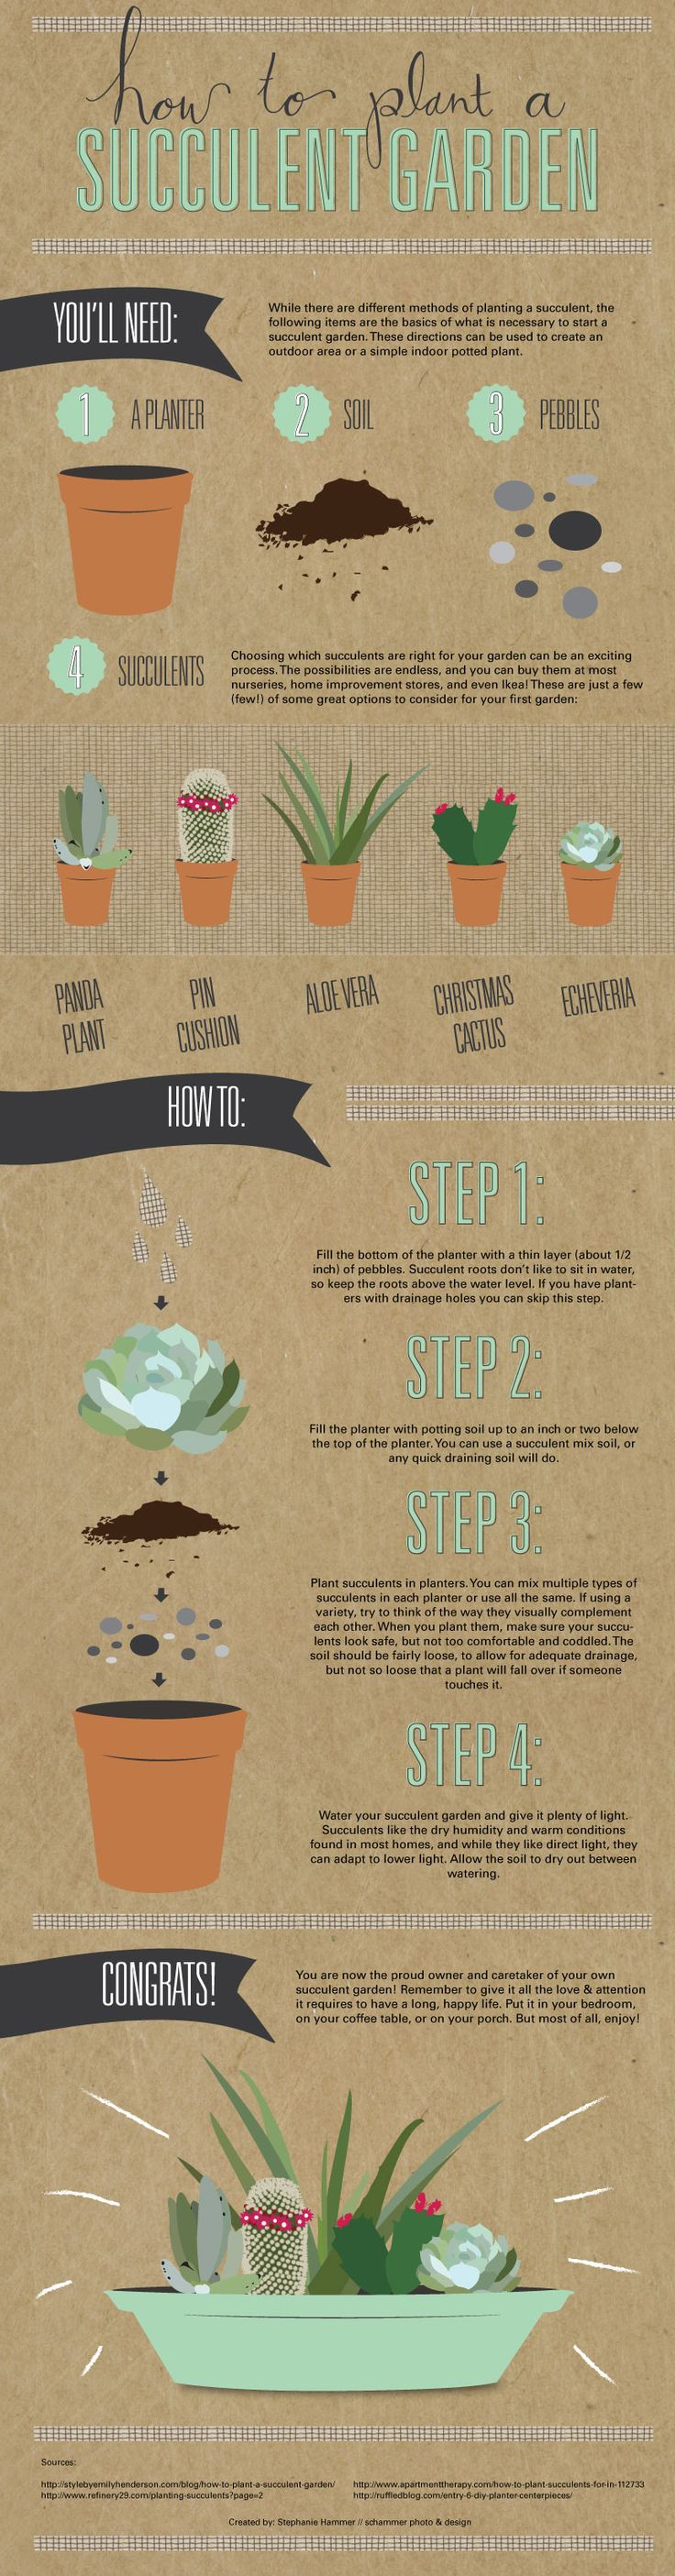 Succulent planting infographic